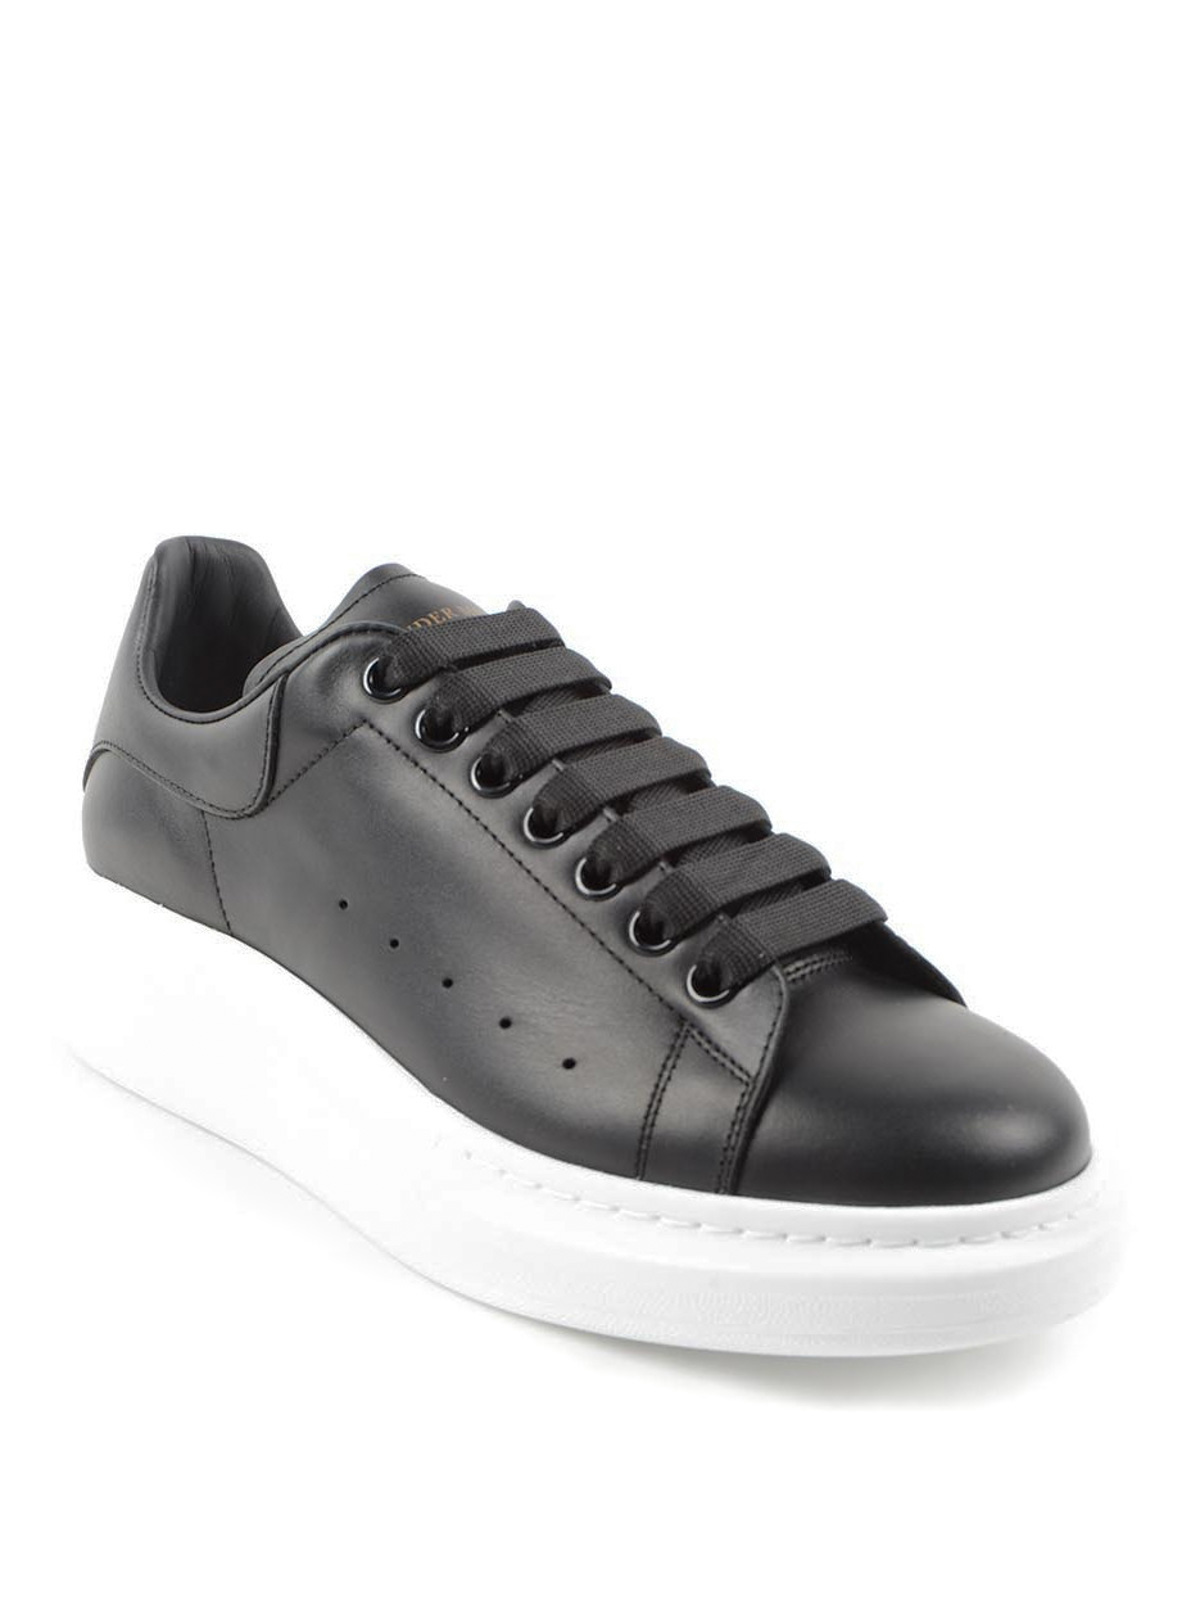 Oversize Sole Leather Sneakers By Alexander Mcqueen